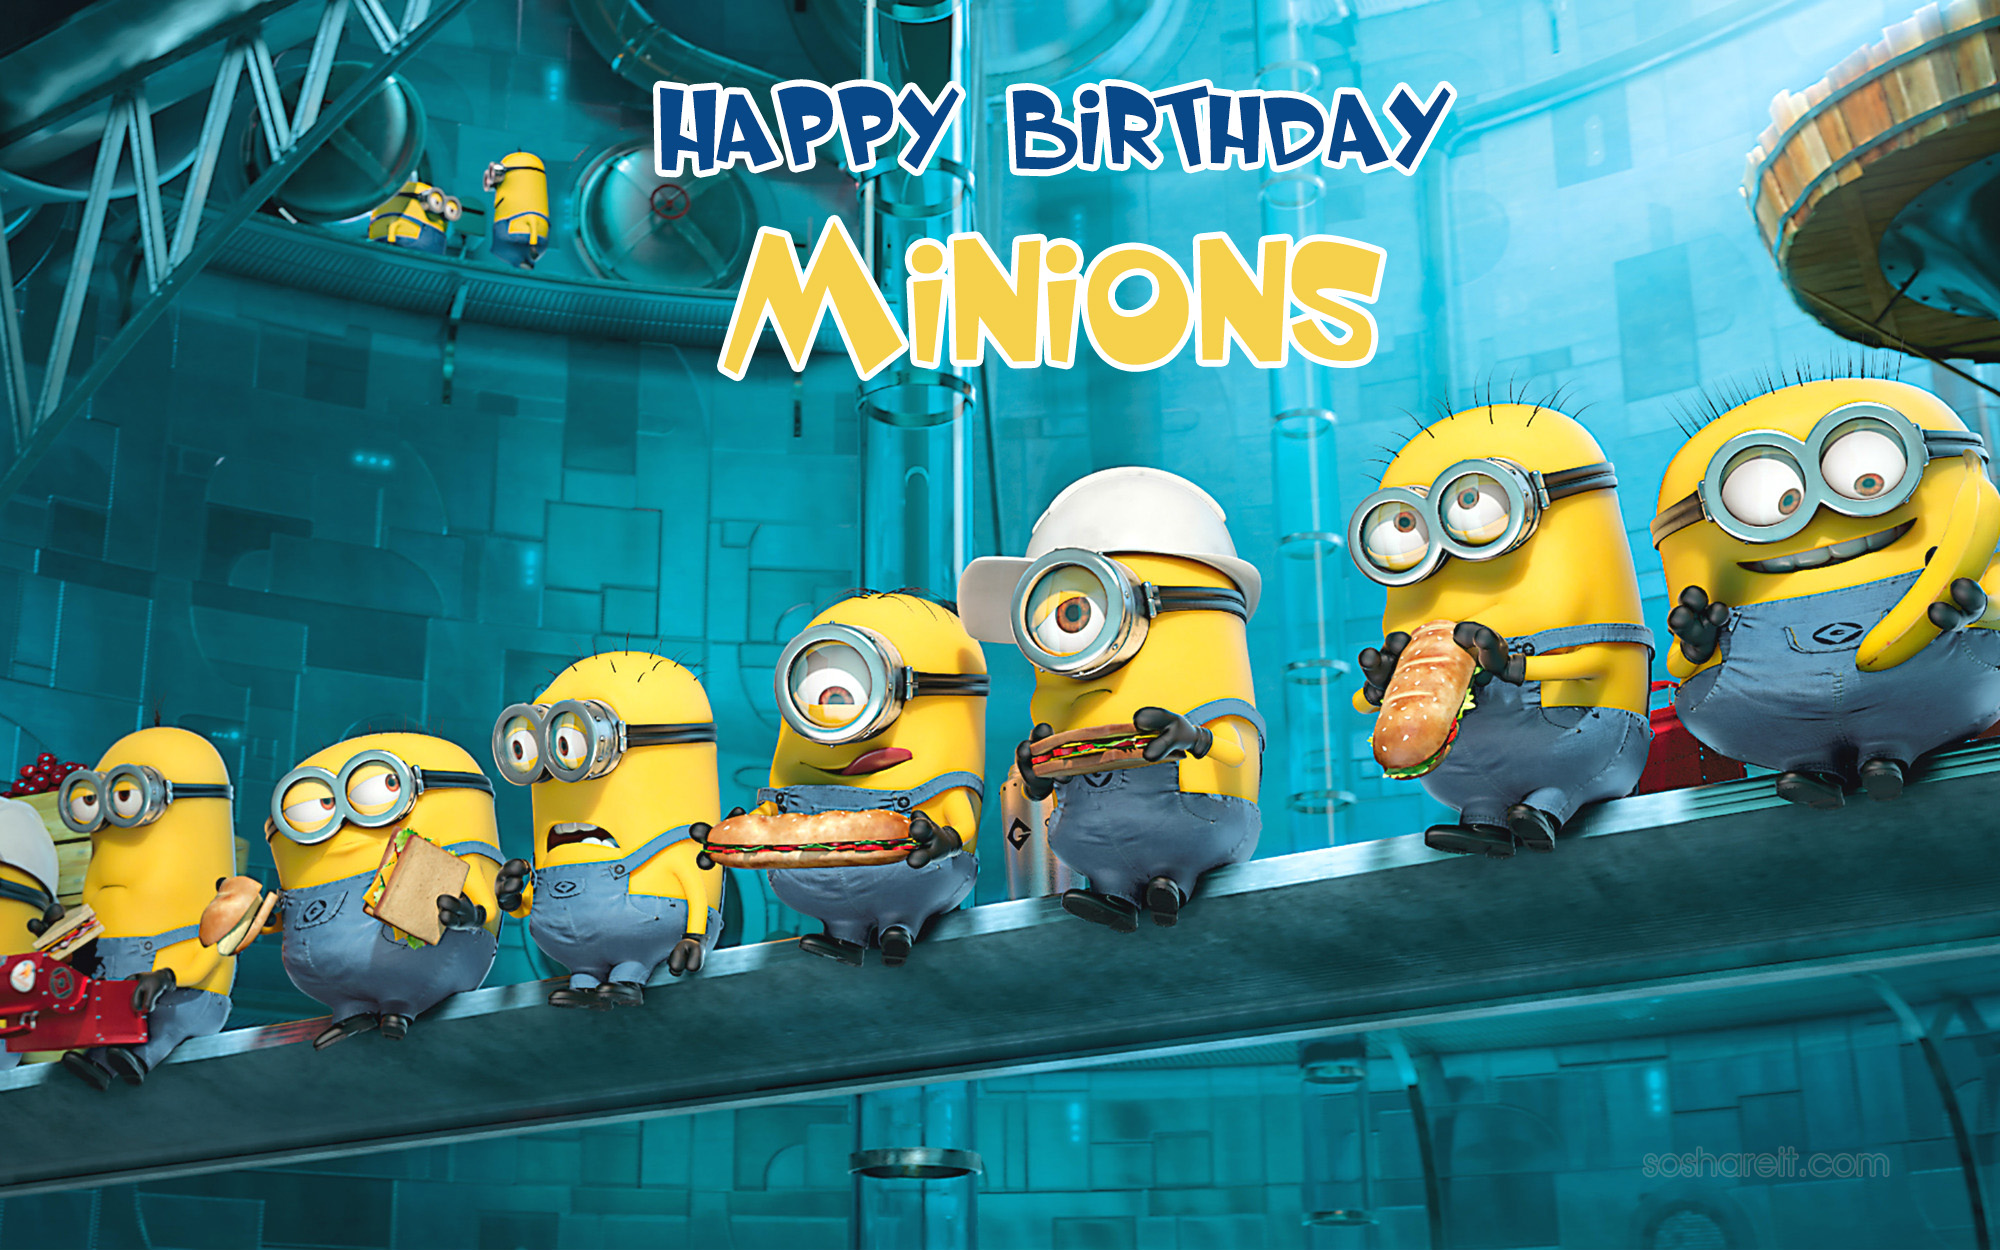 Happy Birthday Minions Wishes Videos Hd Wallpapers